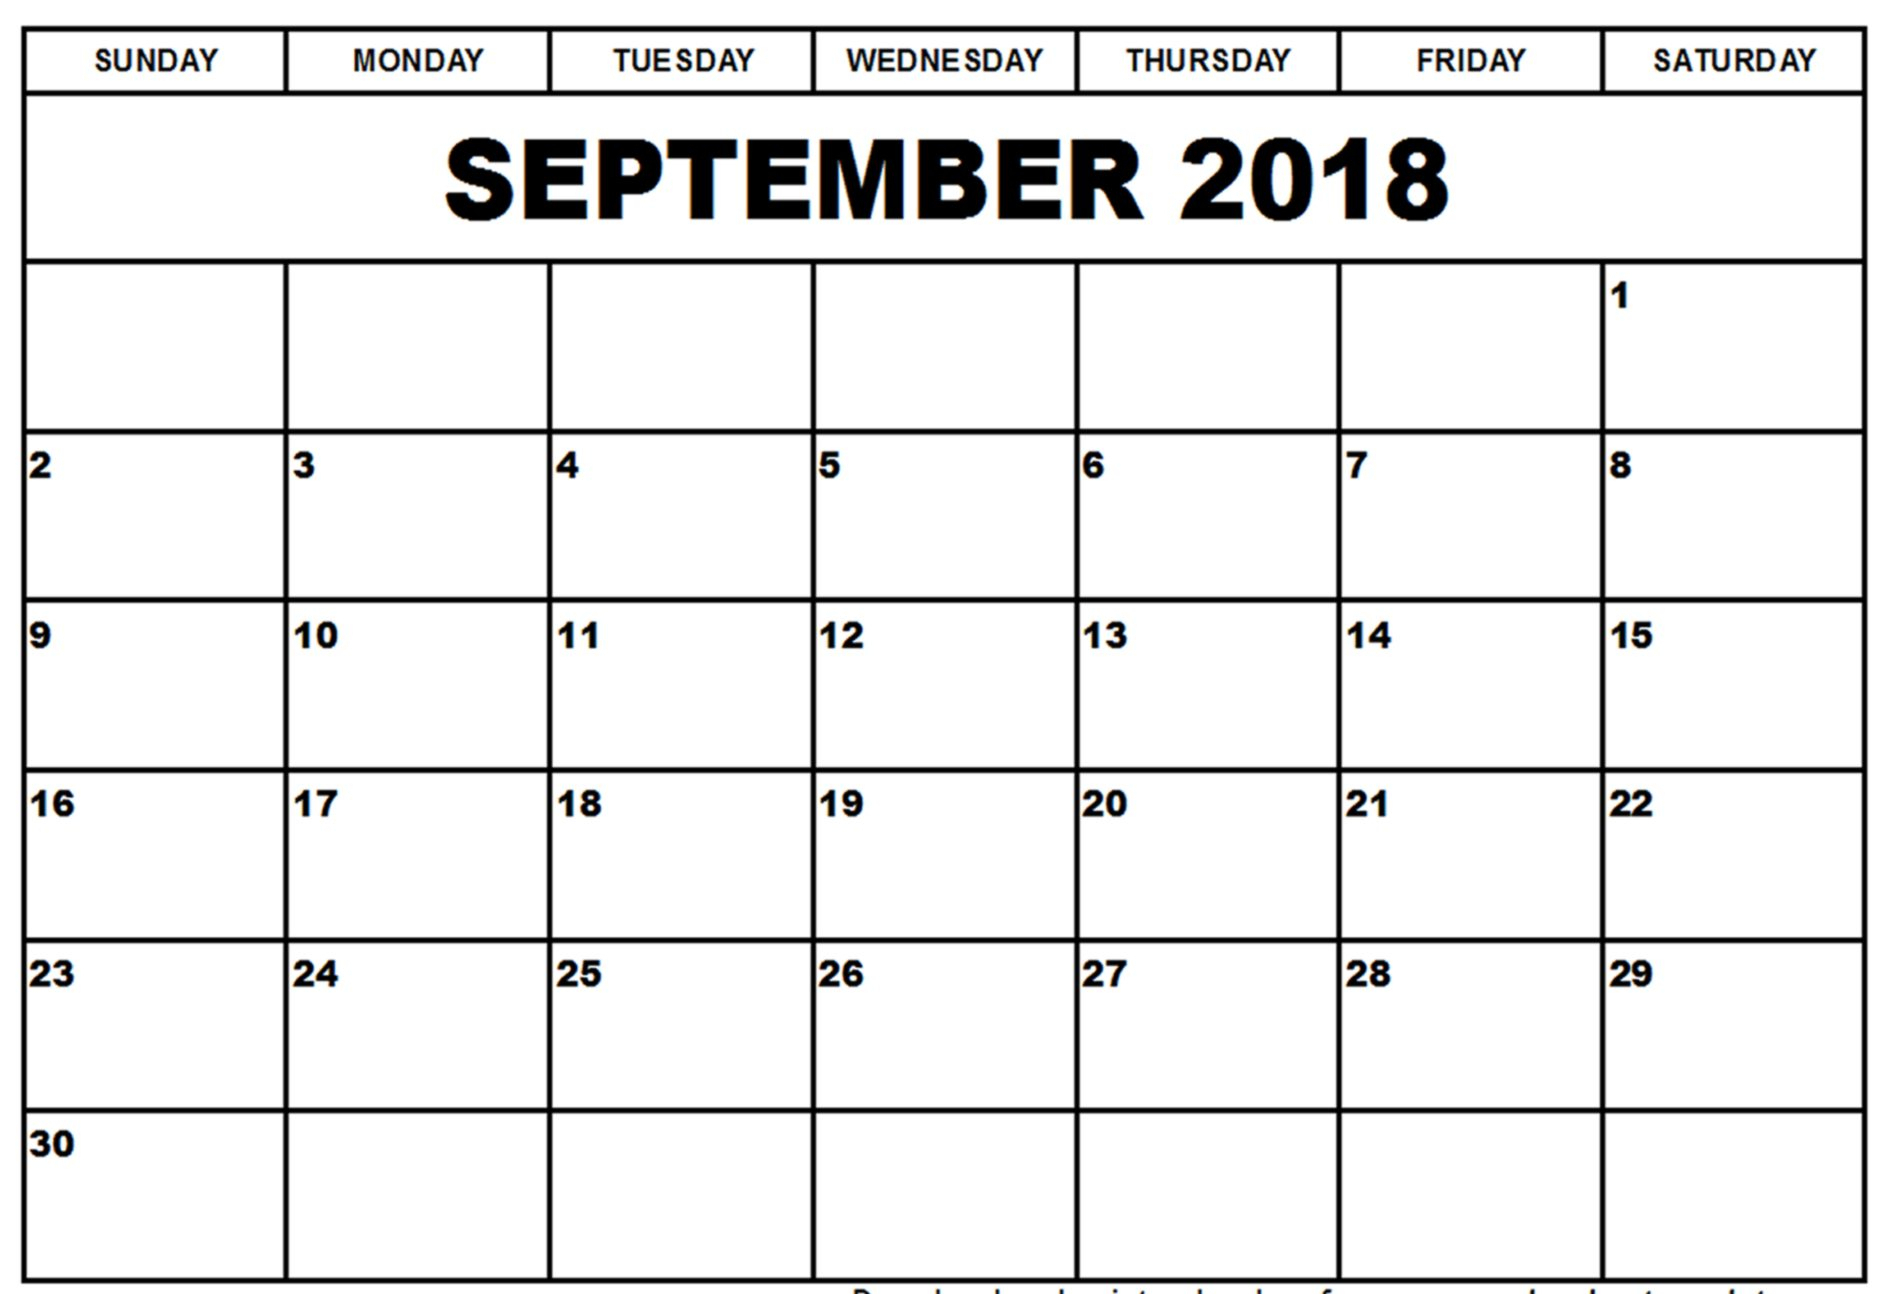 Printable Calendar September 2018 Template Pdf for Blank Calendar For Sept